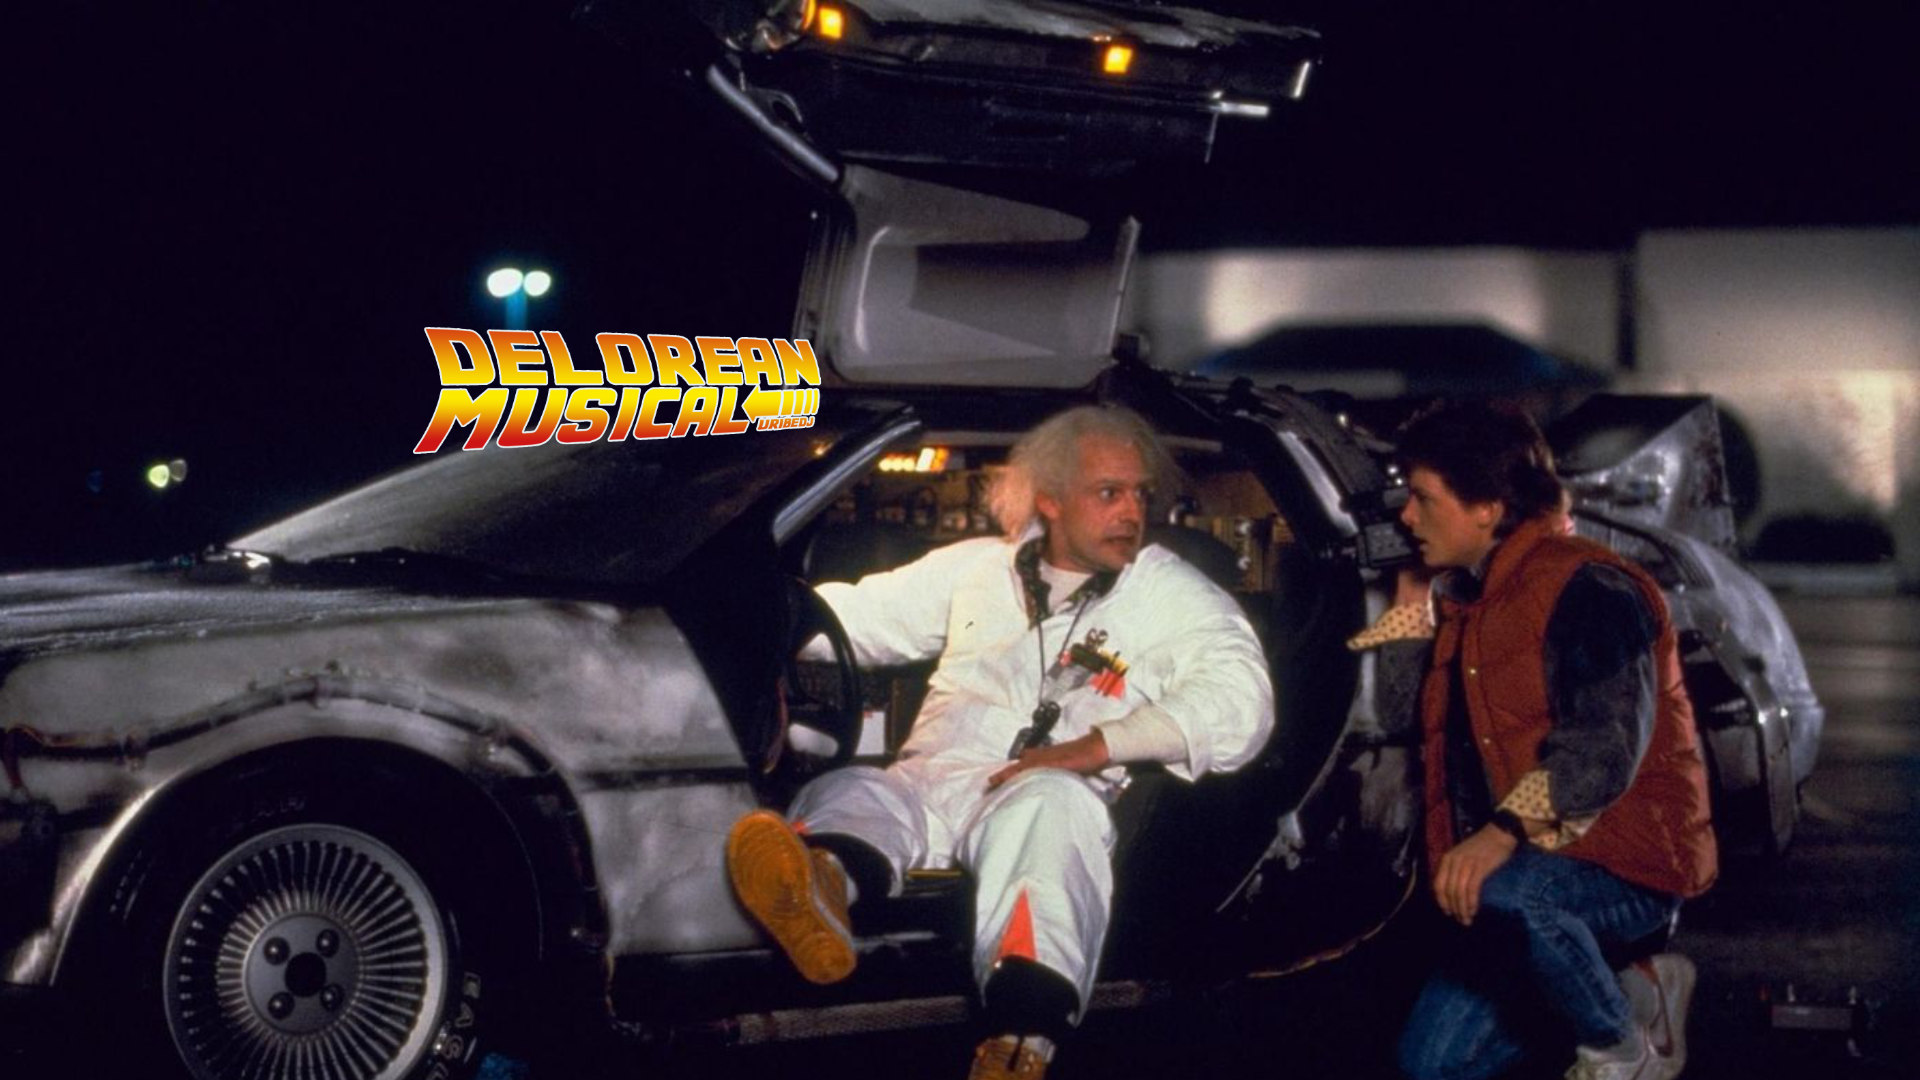 Delorean musical con Uribe DJ: The power of love